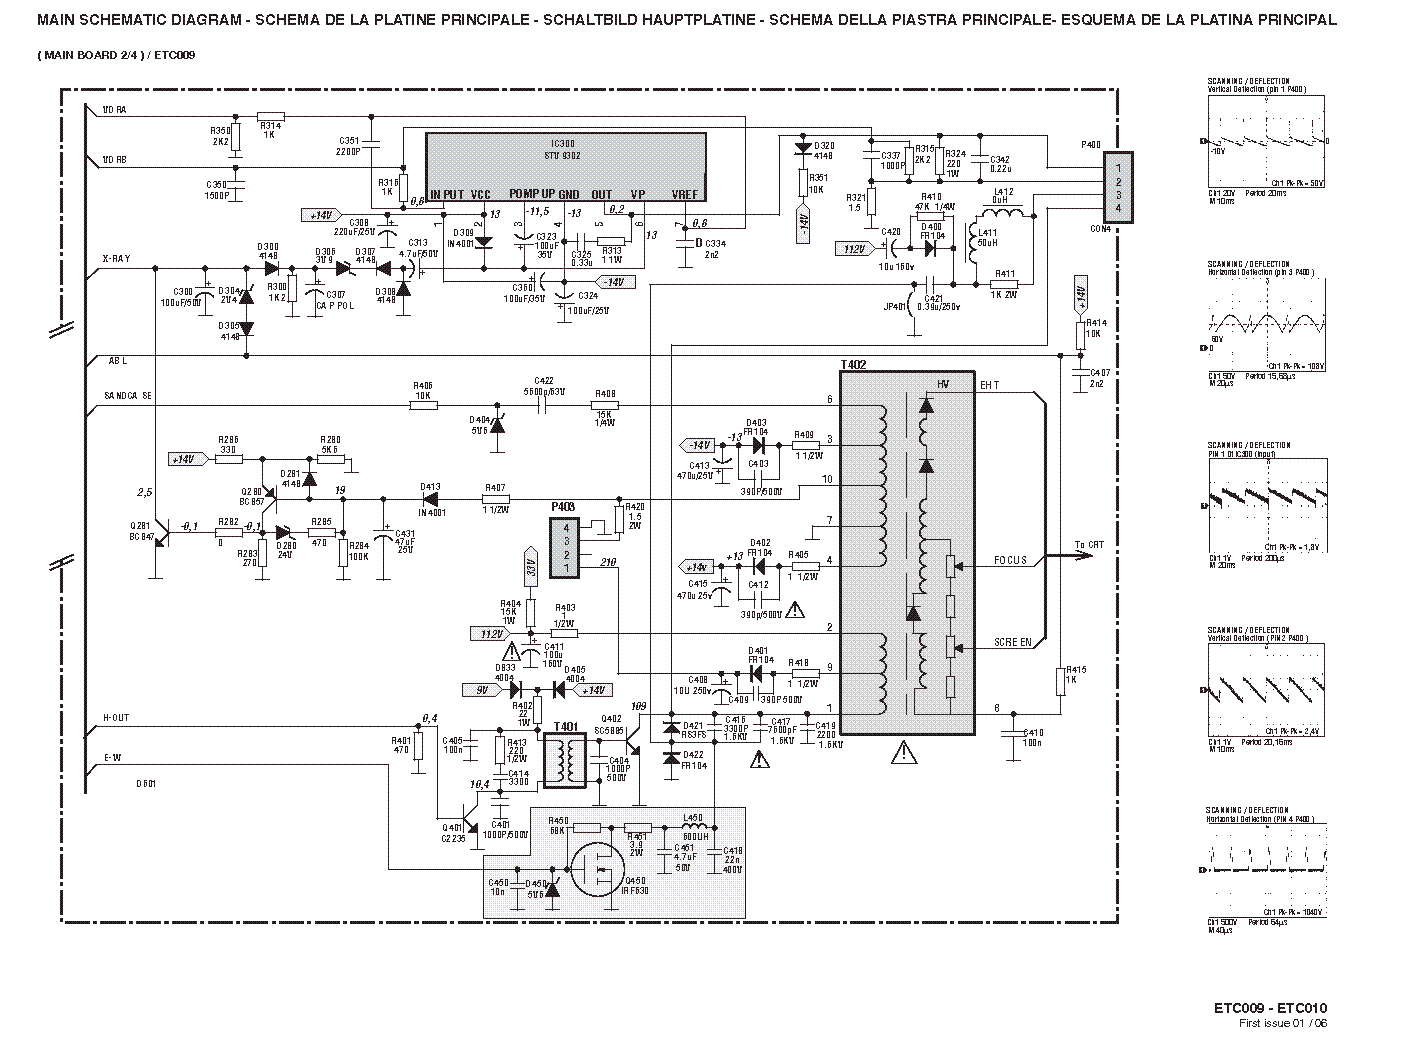 Thomson Etc009 Etc010 Sch Service Manual Download Schematics Eeprom Repair Info For Electronics Experts